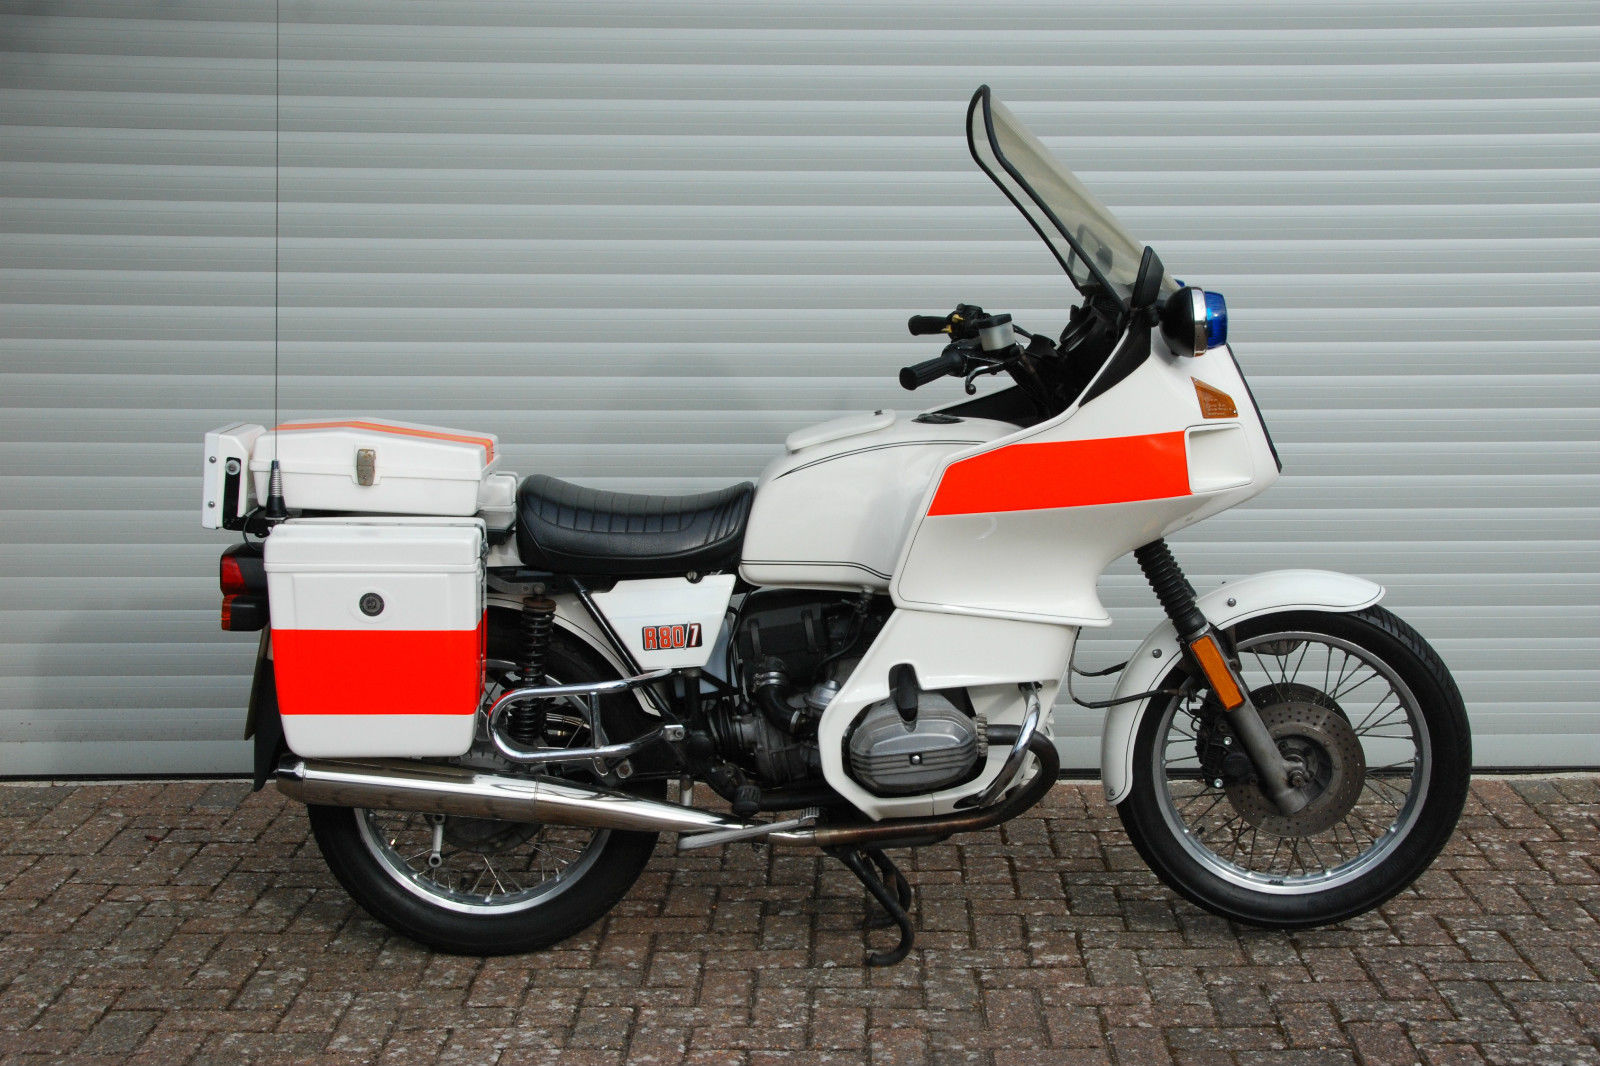 hight resolution of bmw r80 rt 1981 ex police motorcycle 1 jpg